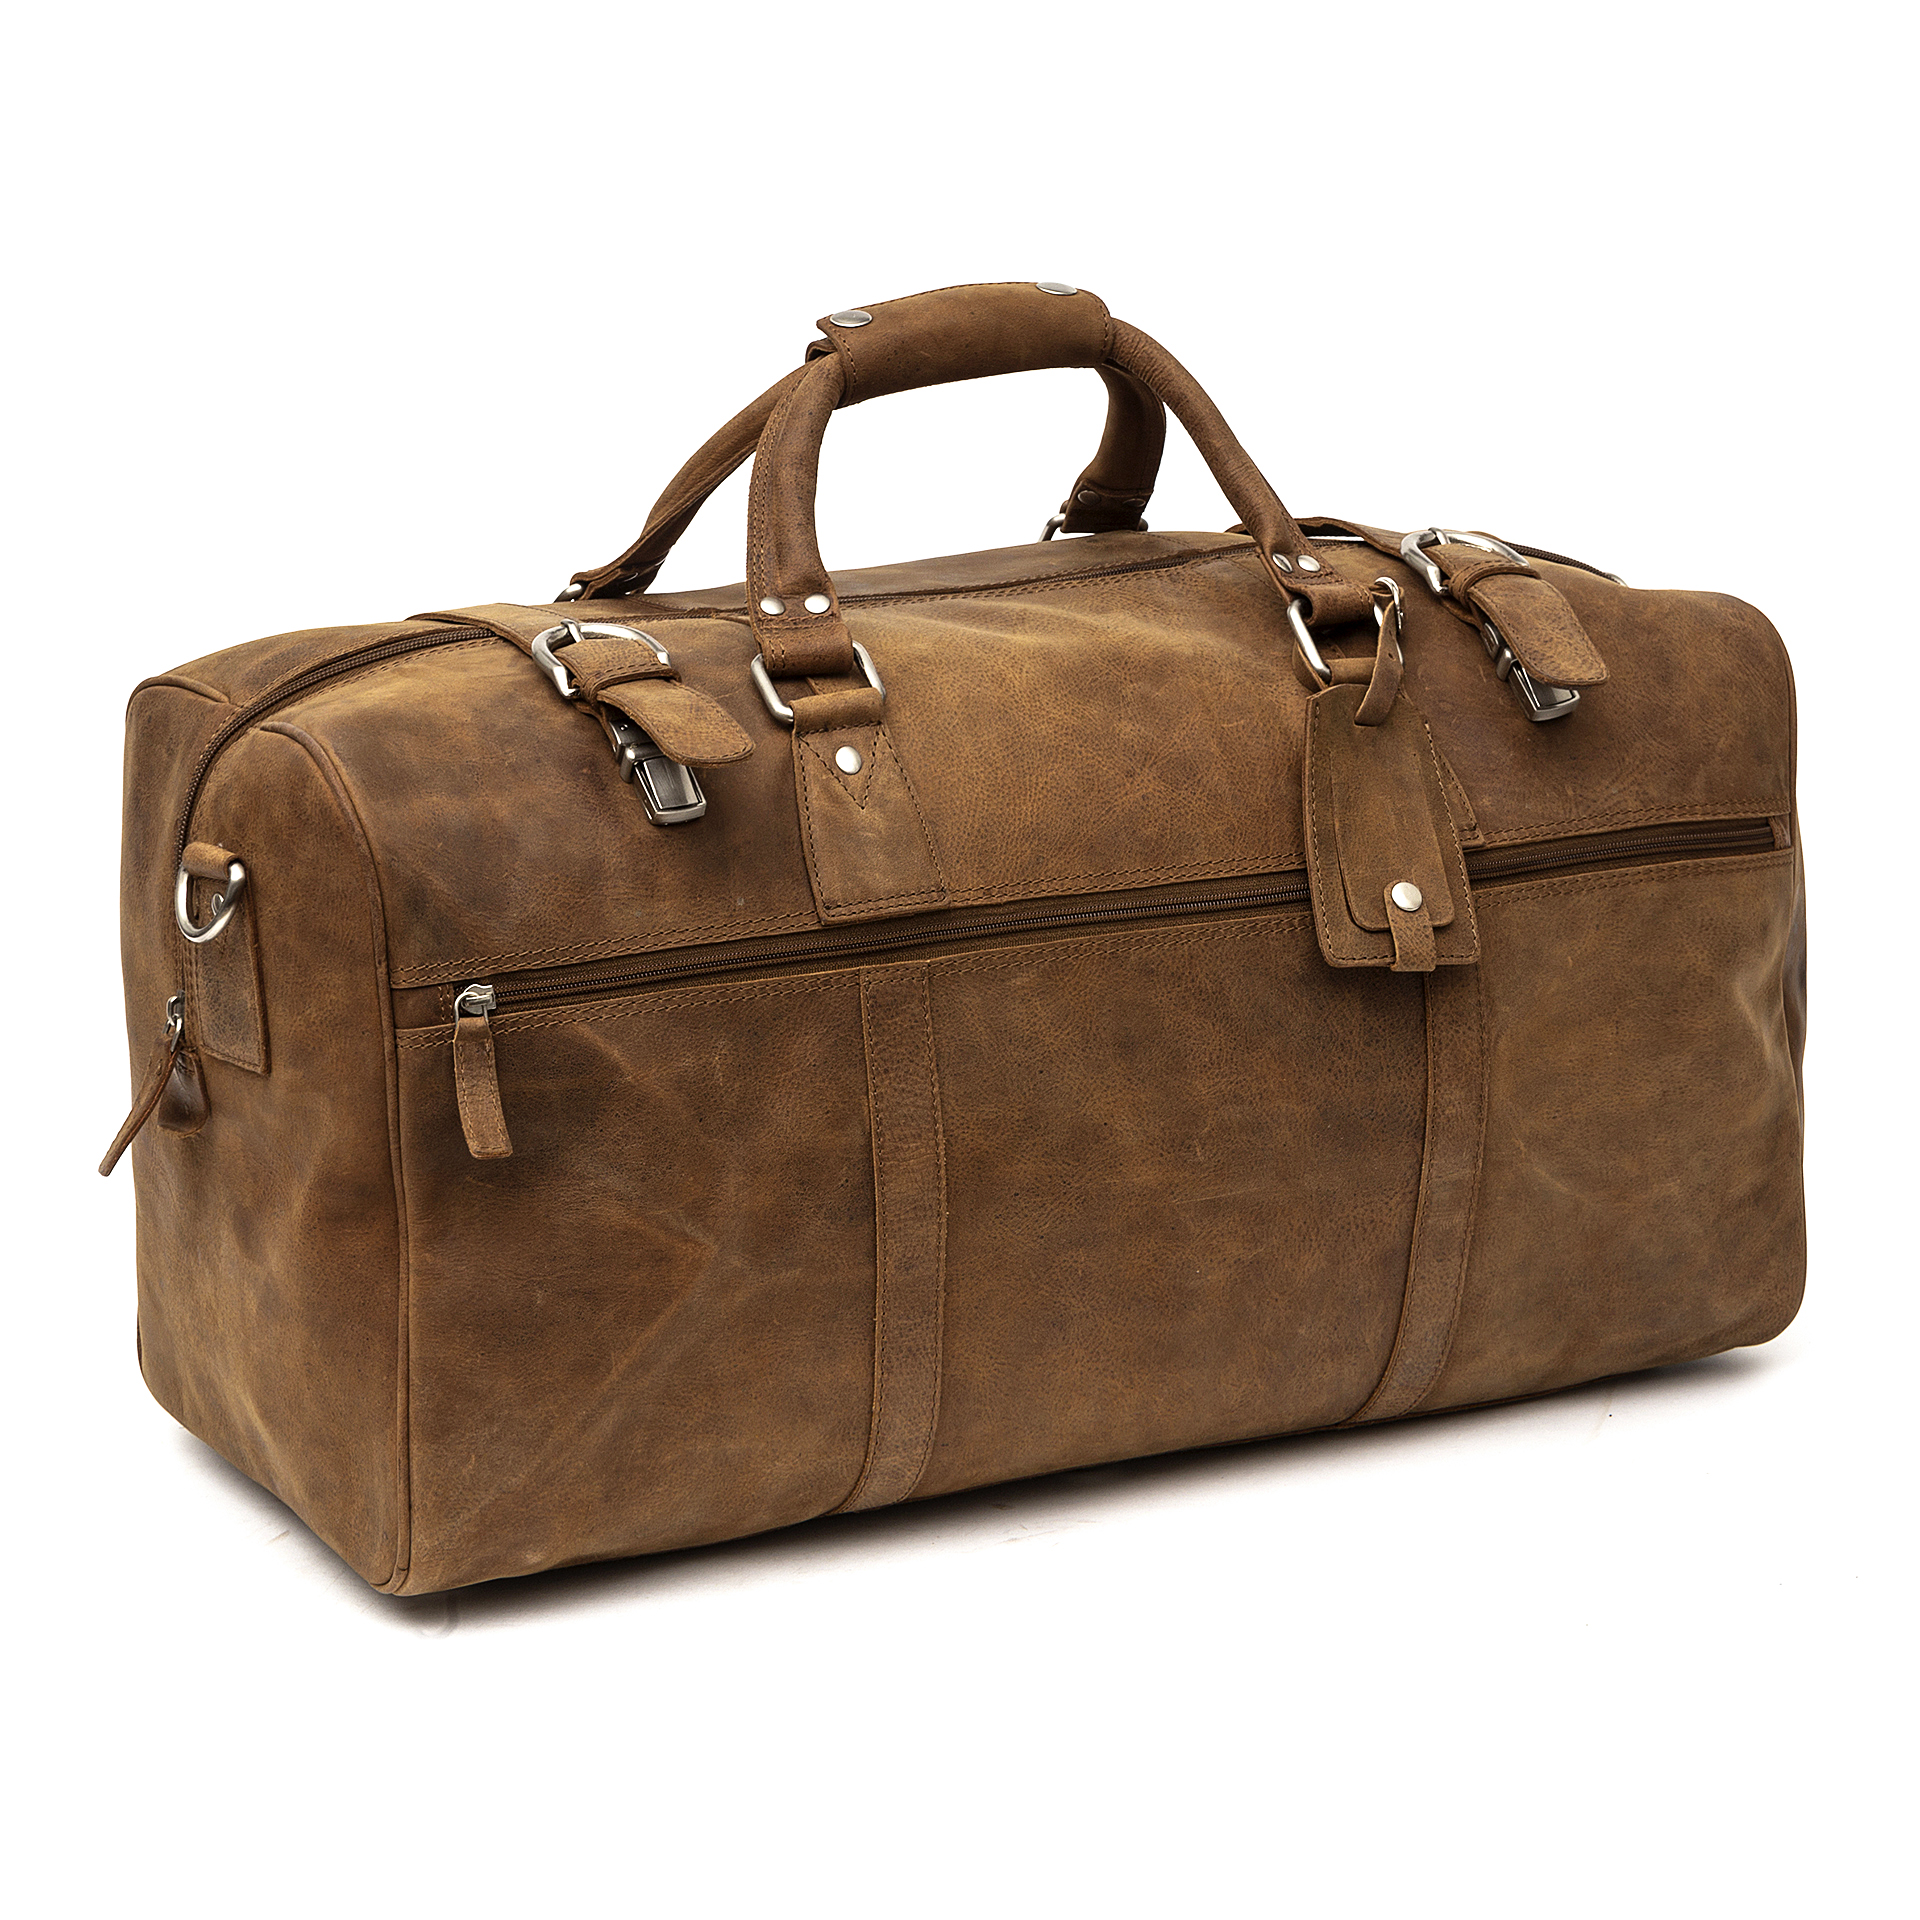 Old Fashioned Leather Satchels